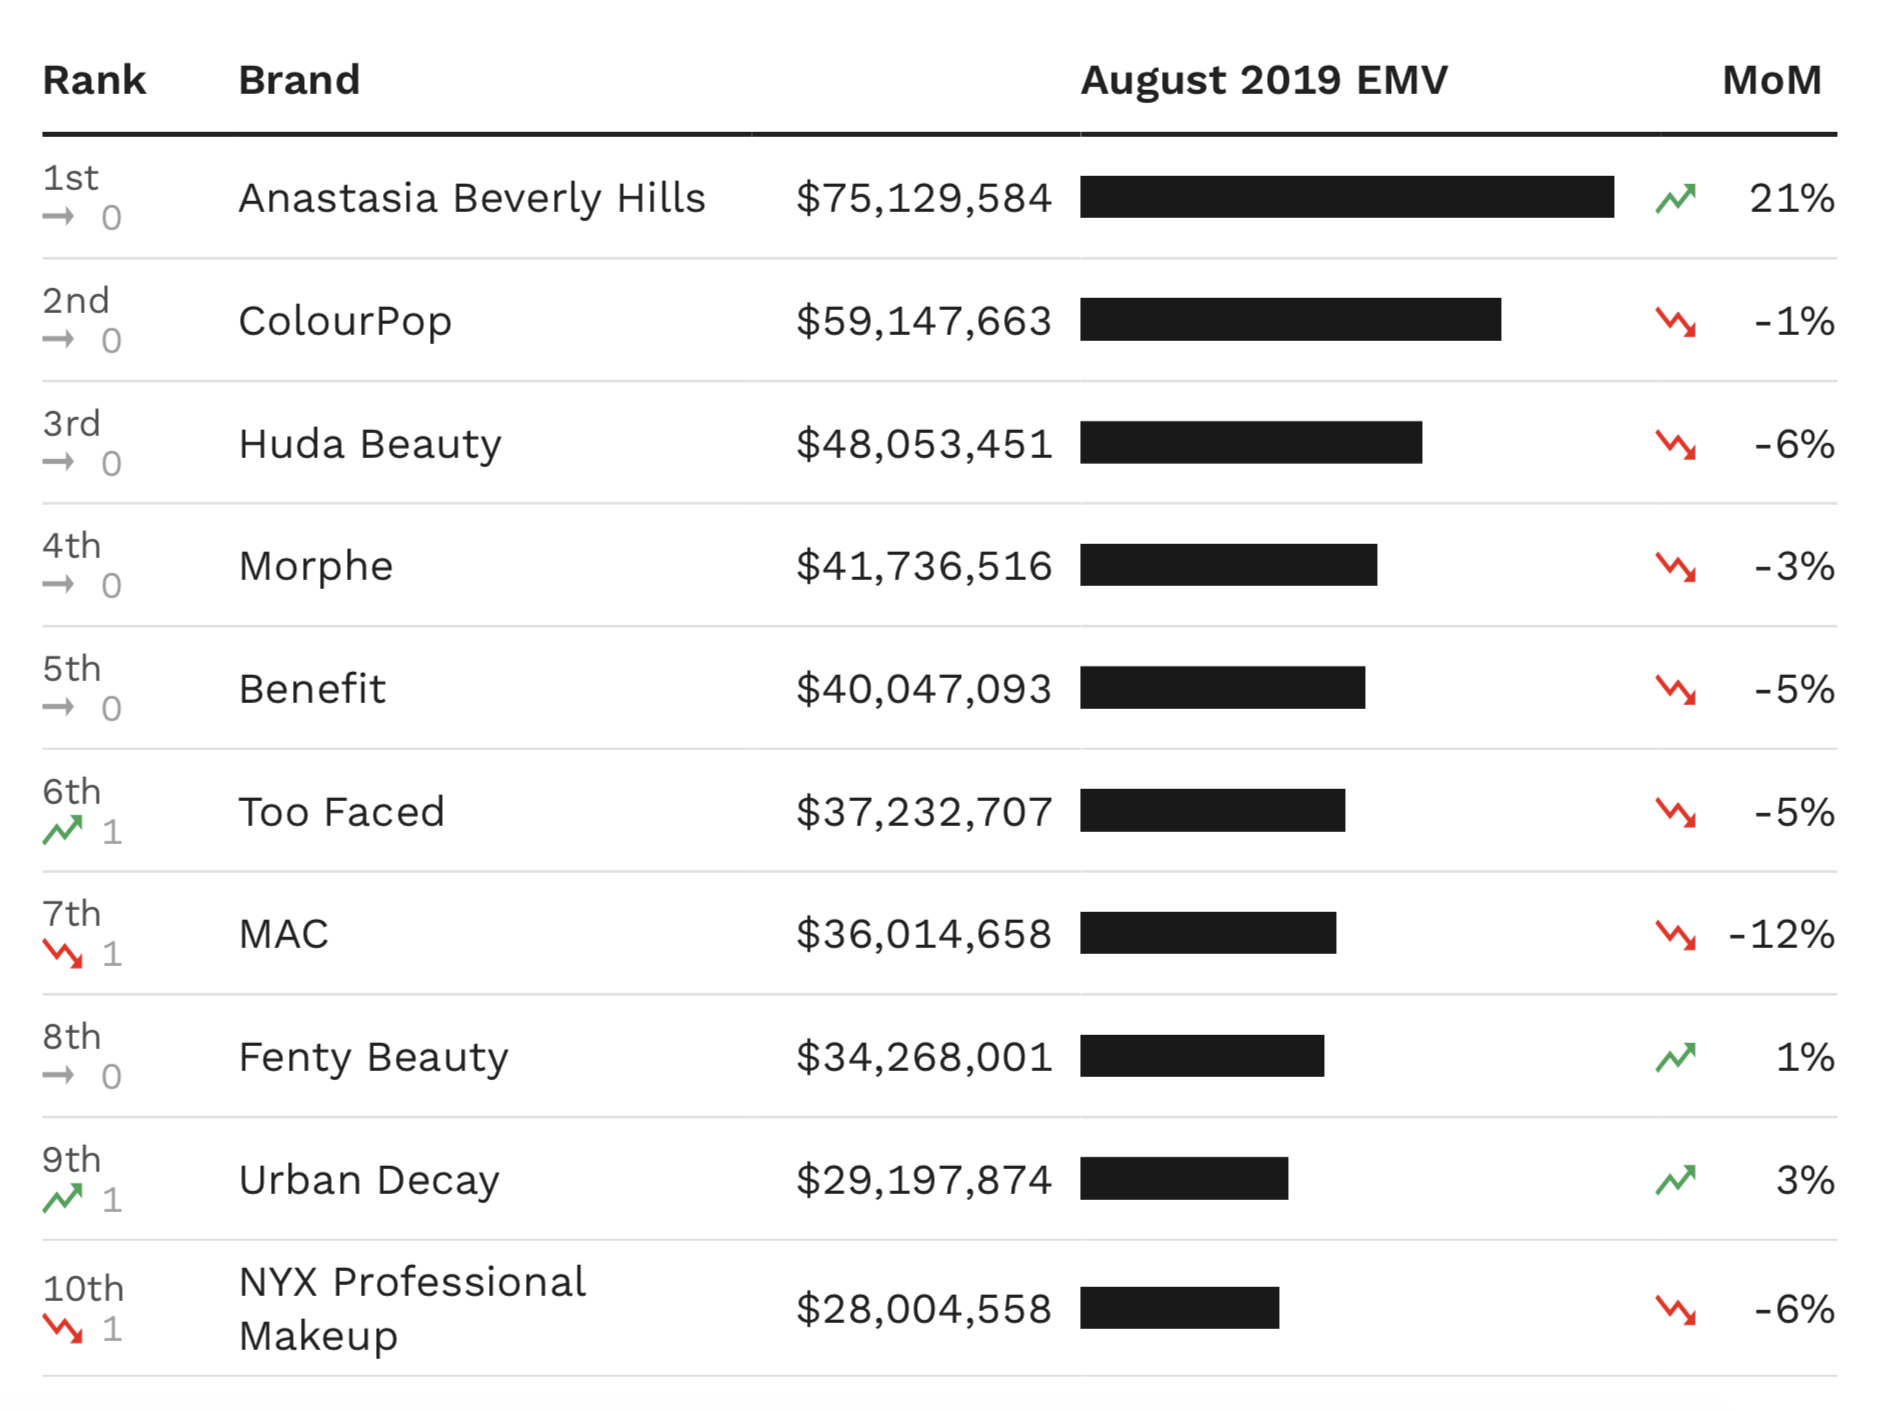 A chart showing the top 10 makeup brands in the U.S. by EMV performance in August.